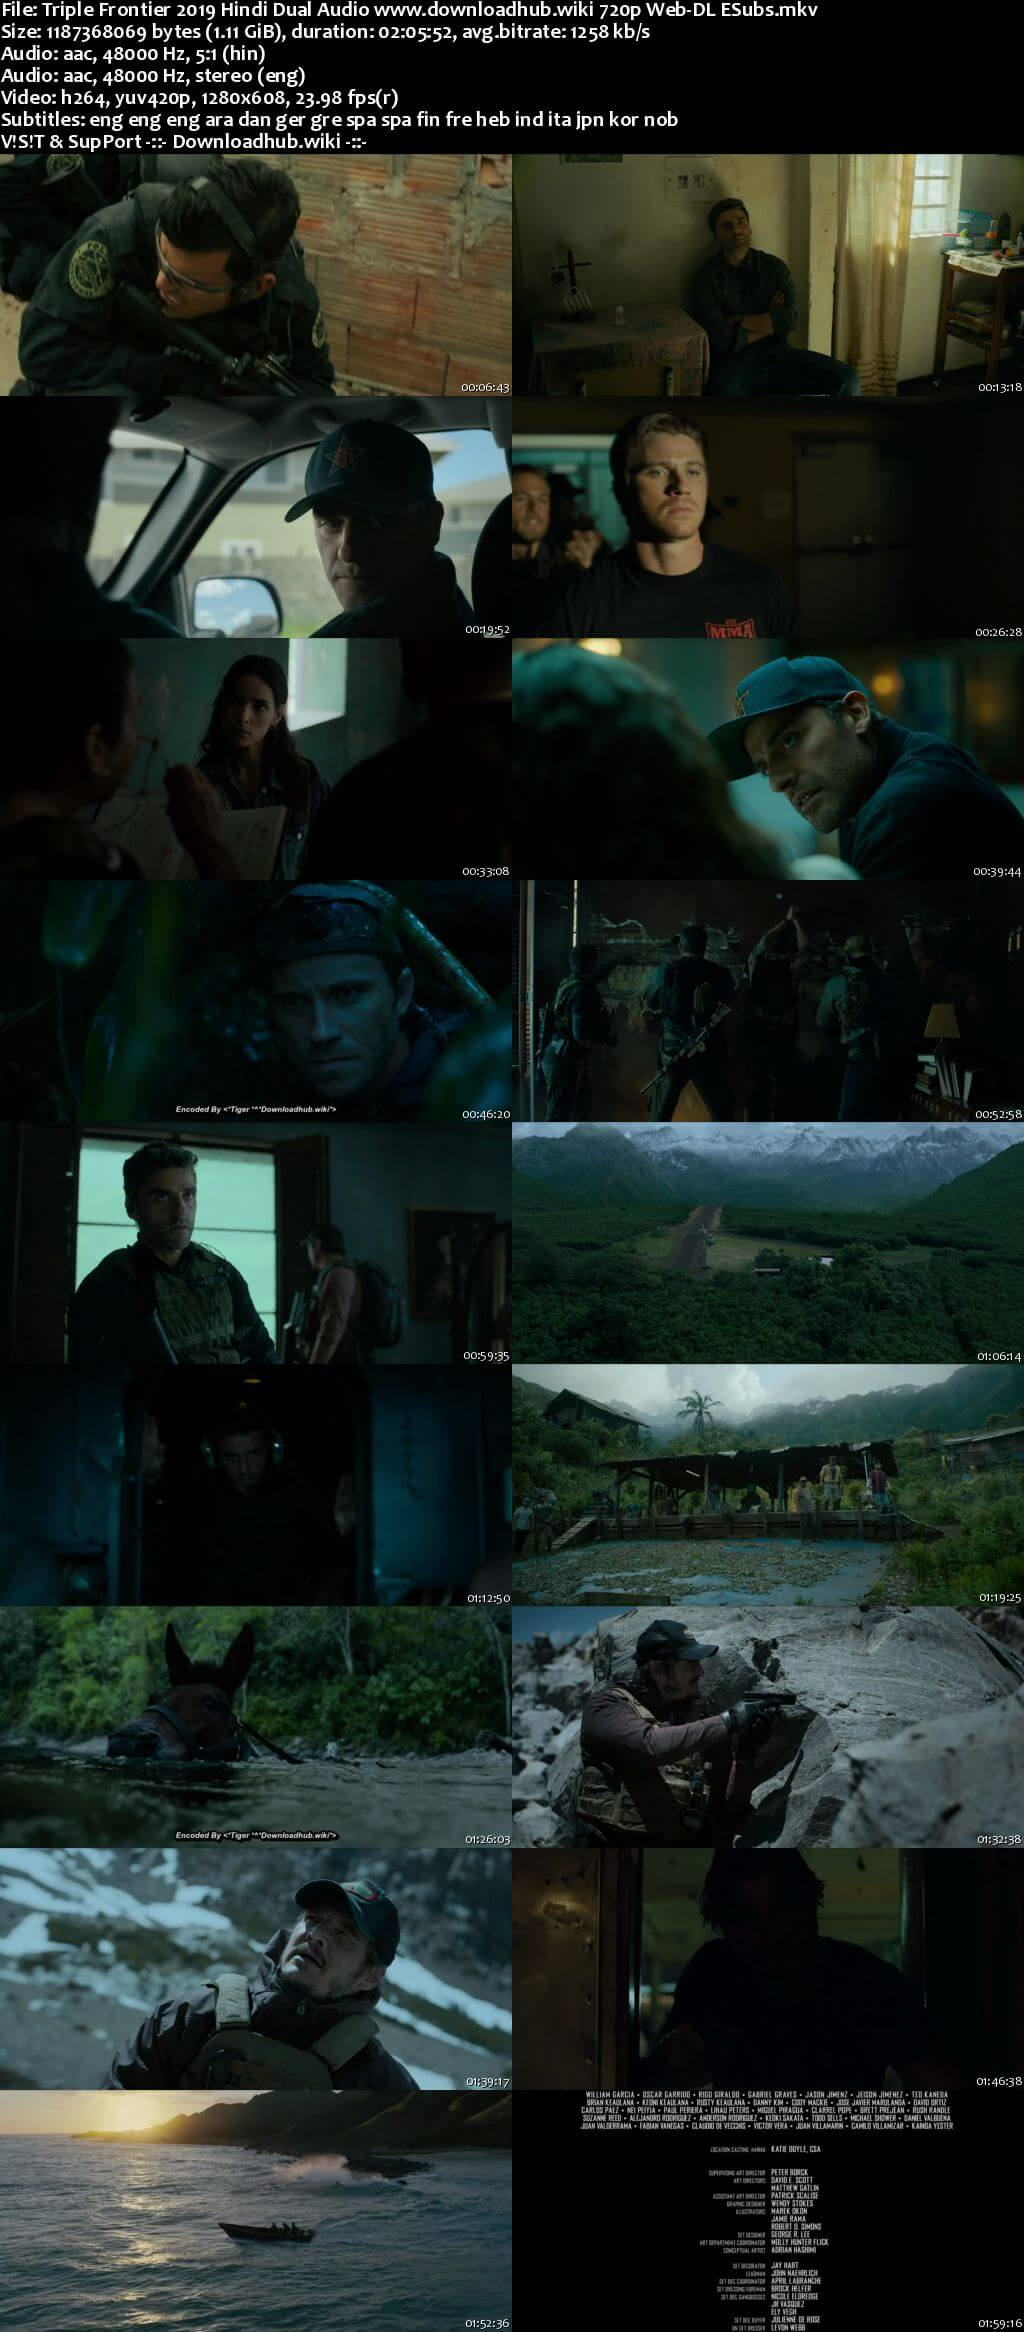 Triple Frontier 2019 Hindi Dual Audio 720p Web-DL MSubs